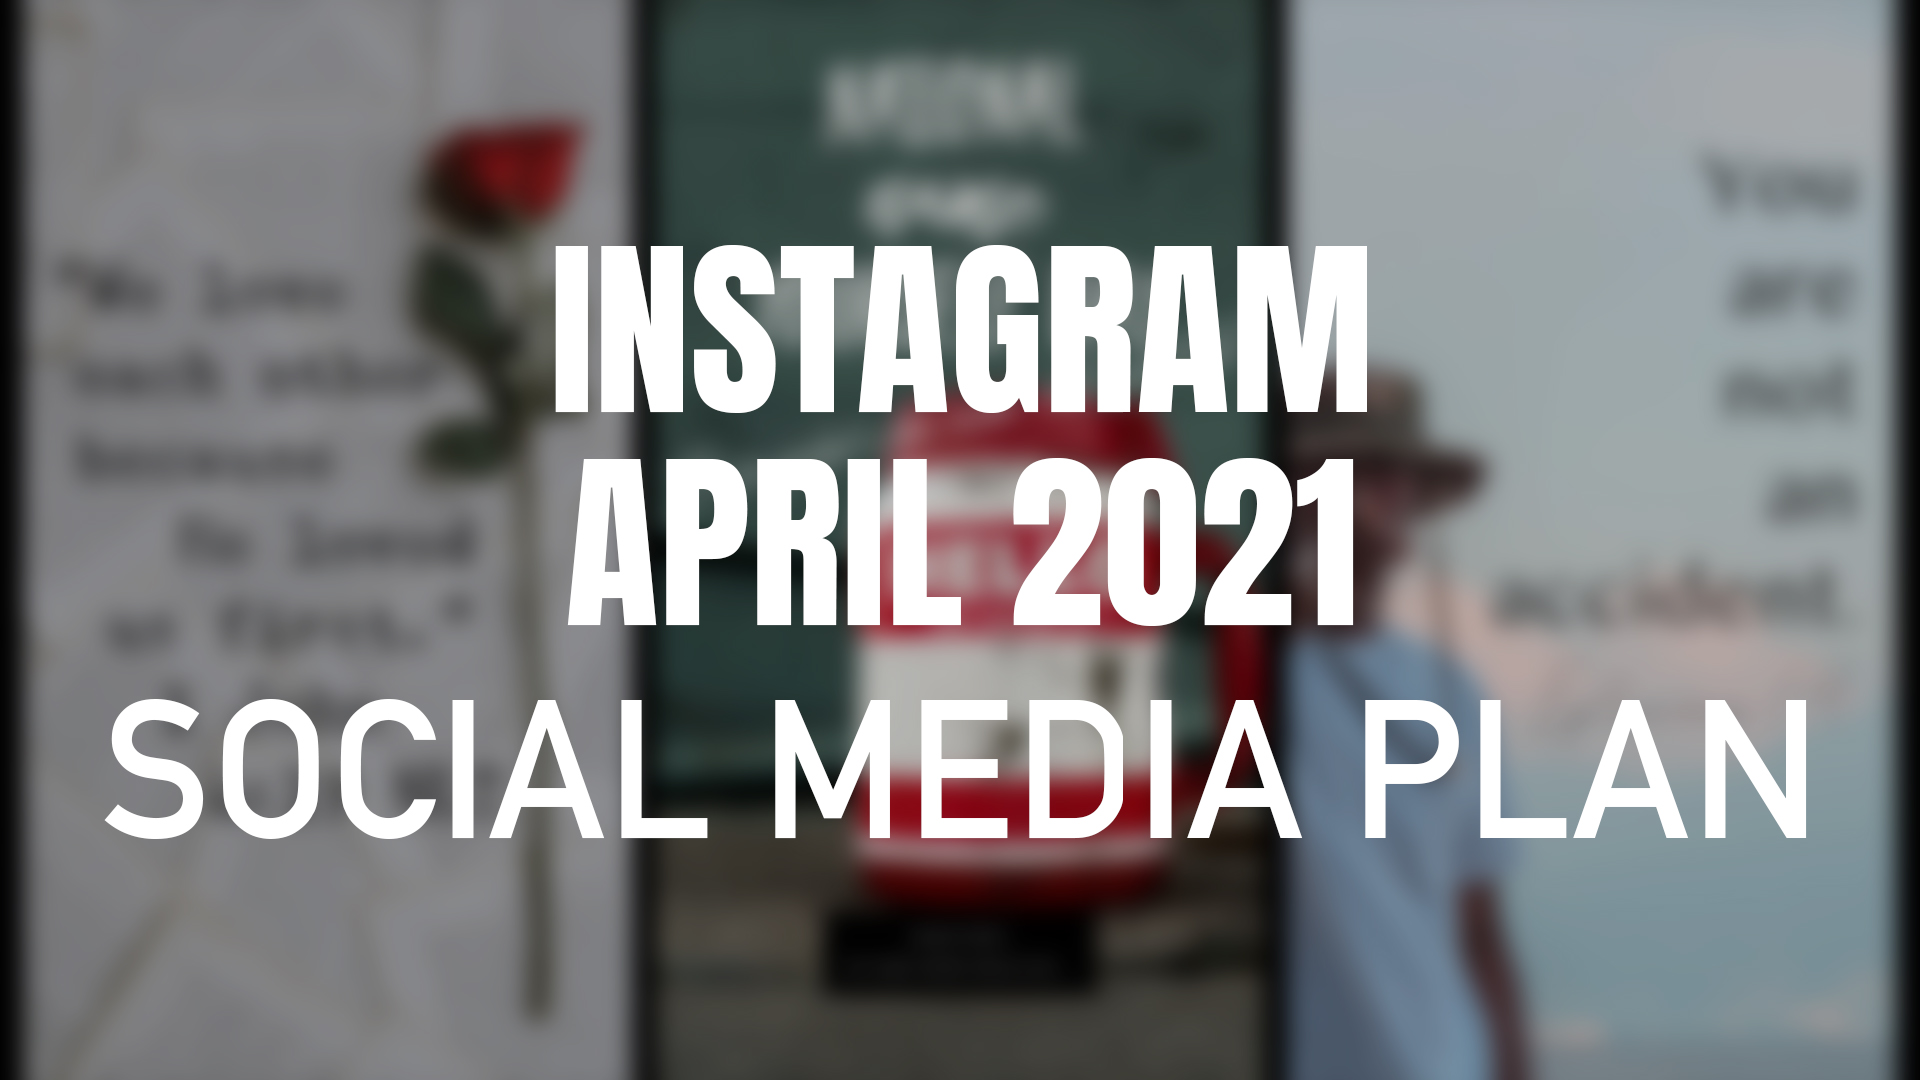 Instagram April 2021 Social Media Plan